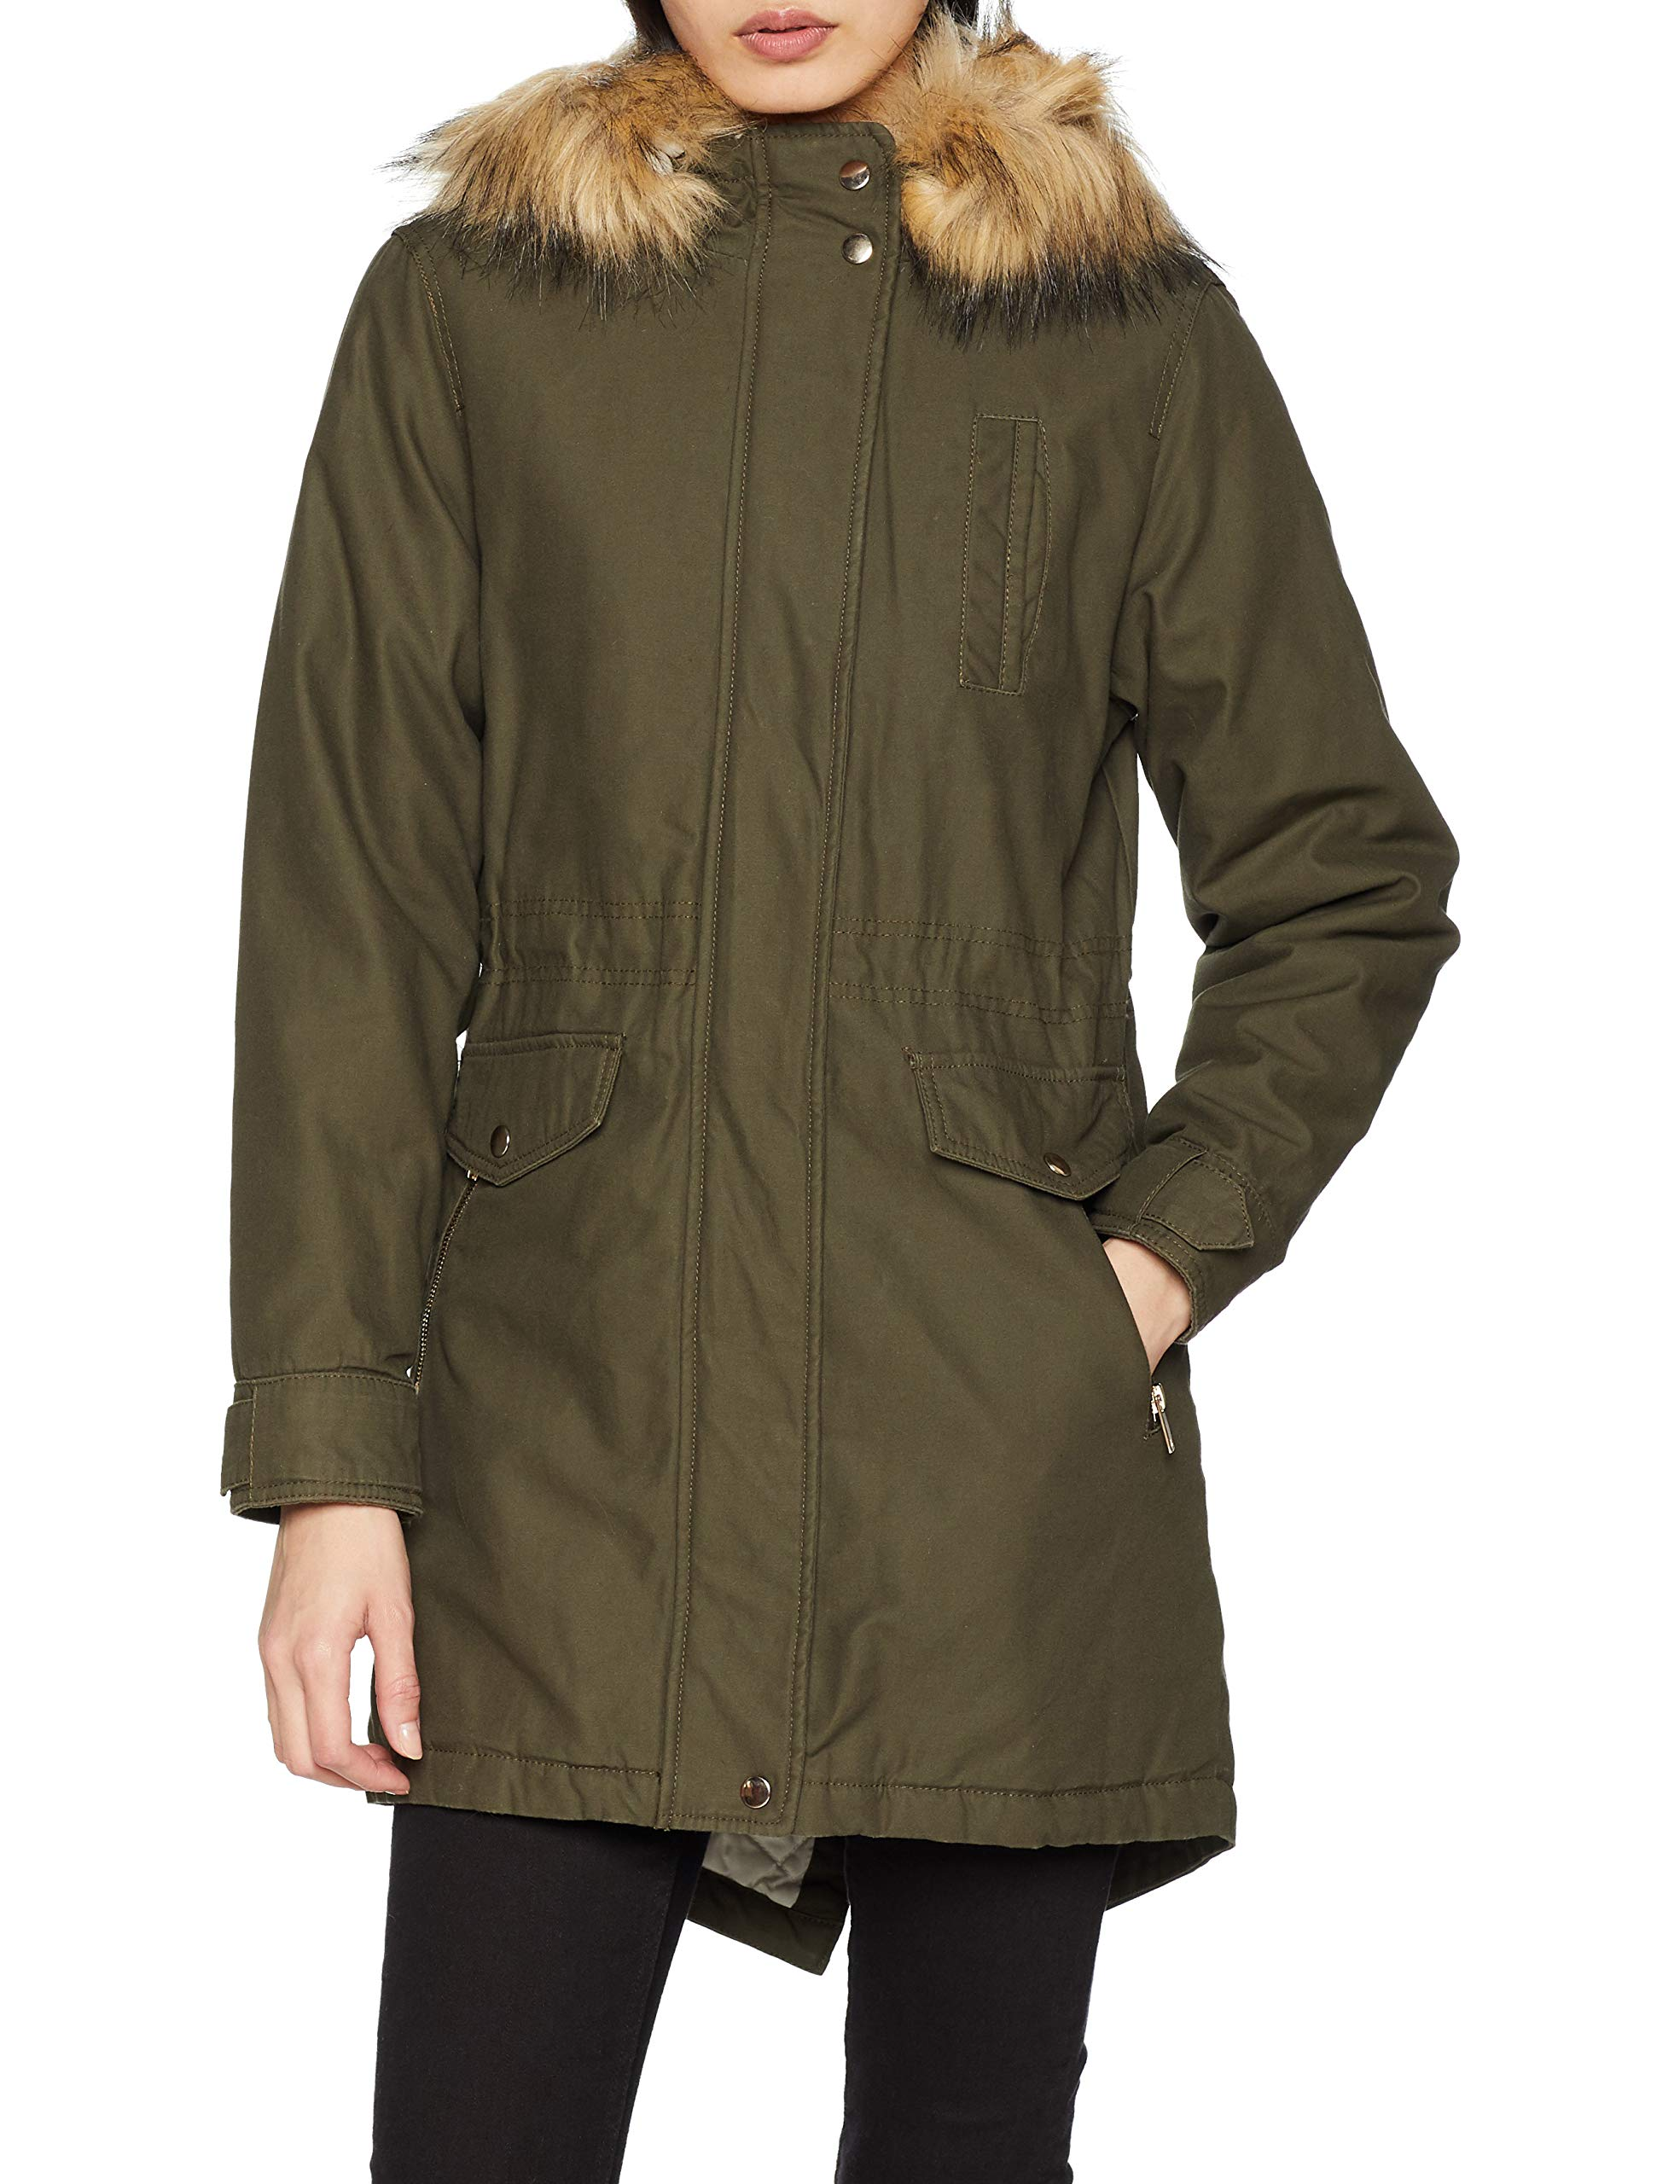 Look New ParkaVertdark Chicago Khaki38taille Fabricant10Femme xedCBo